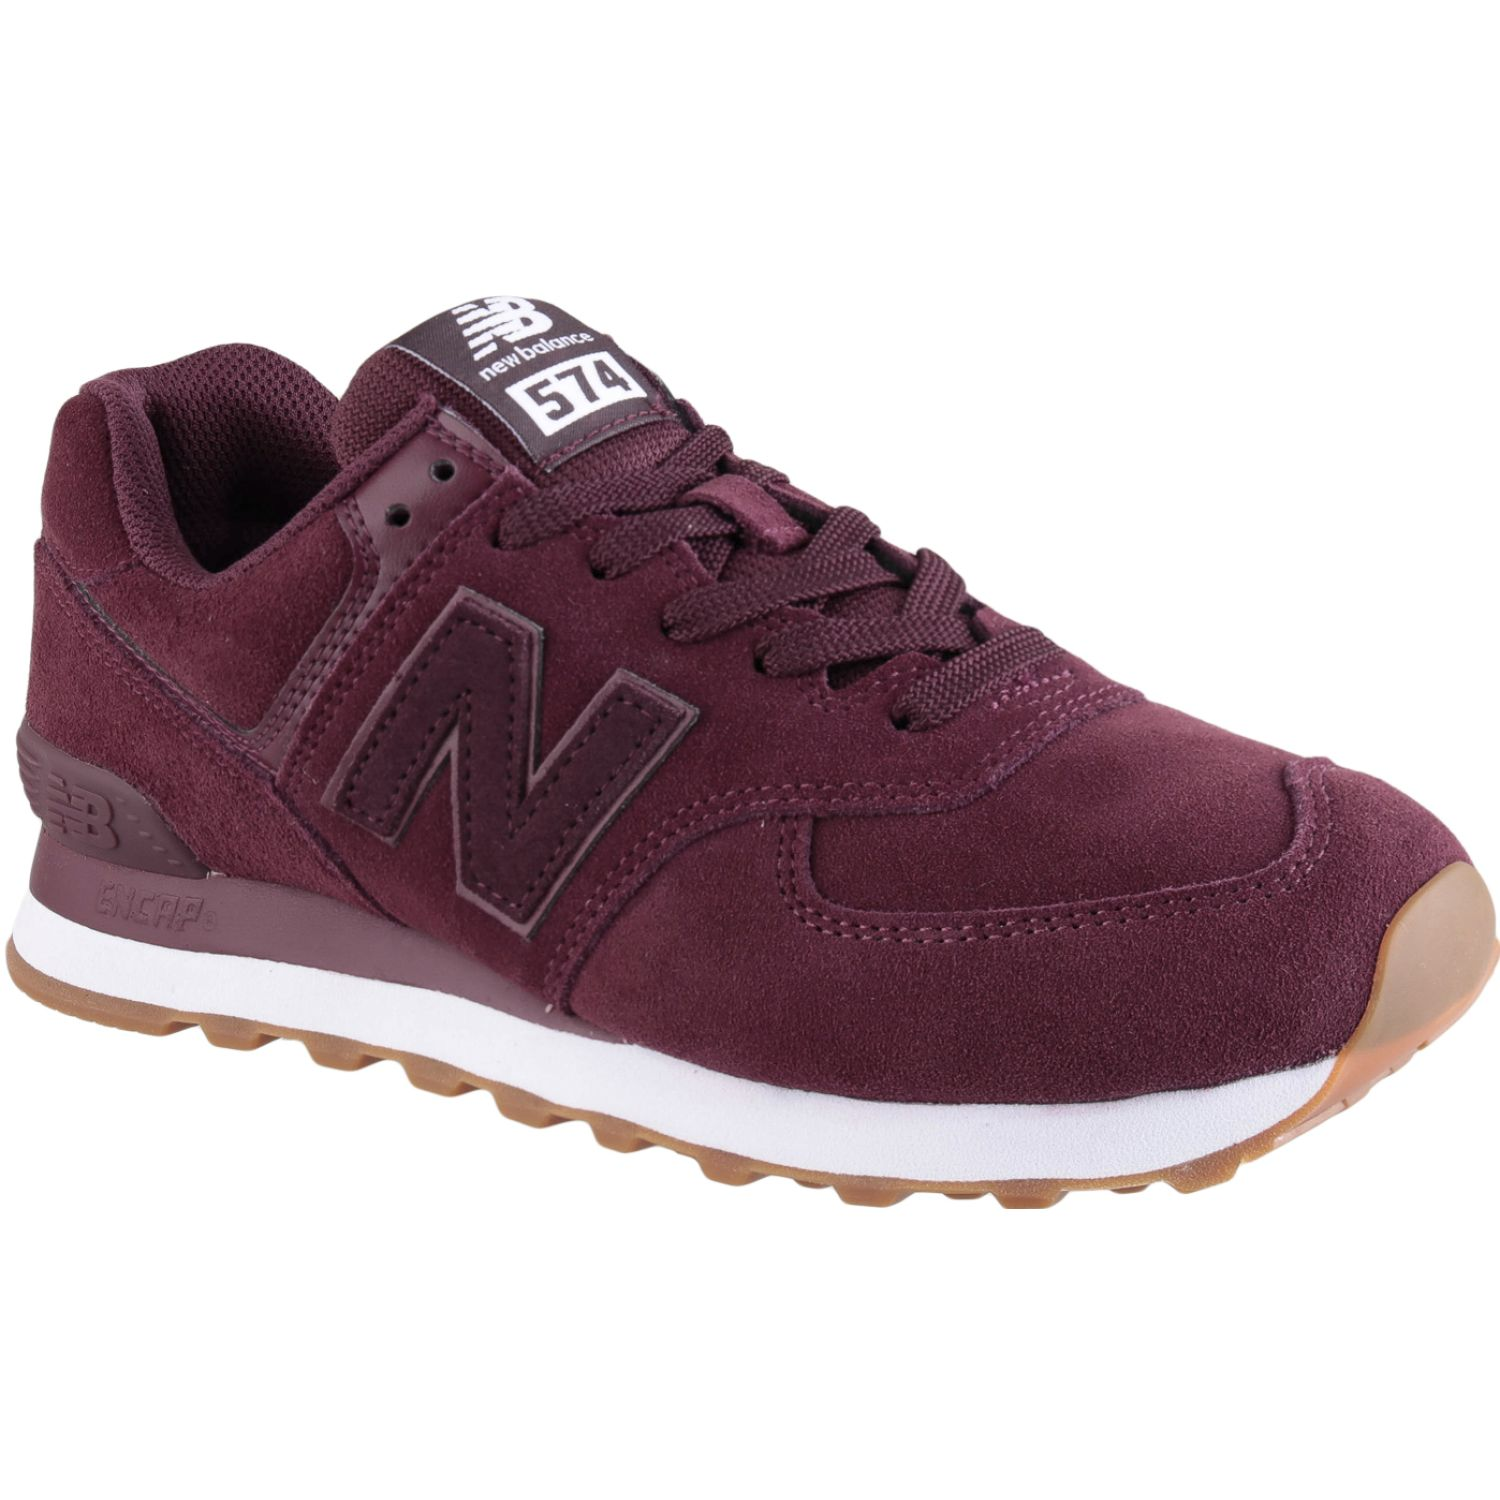 New Balance 574 Vino Walking